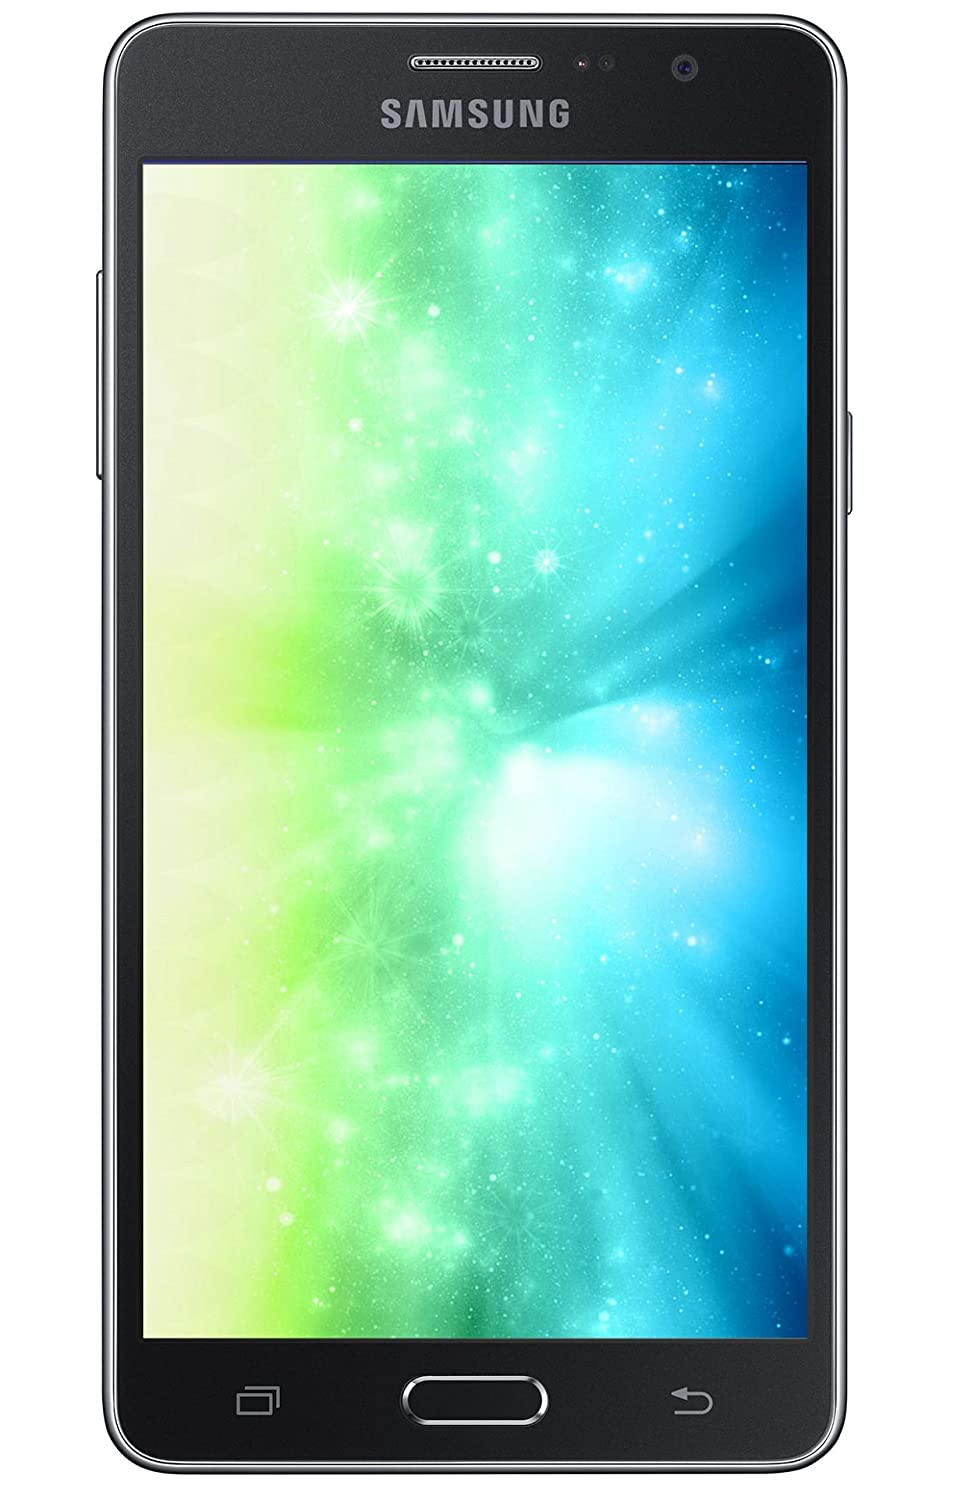 Samsung On5 Pro (Black) By Amazon @ Rs.7,490